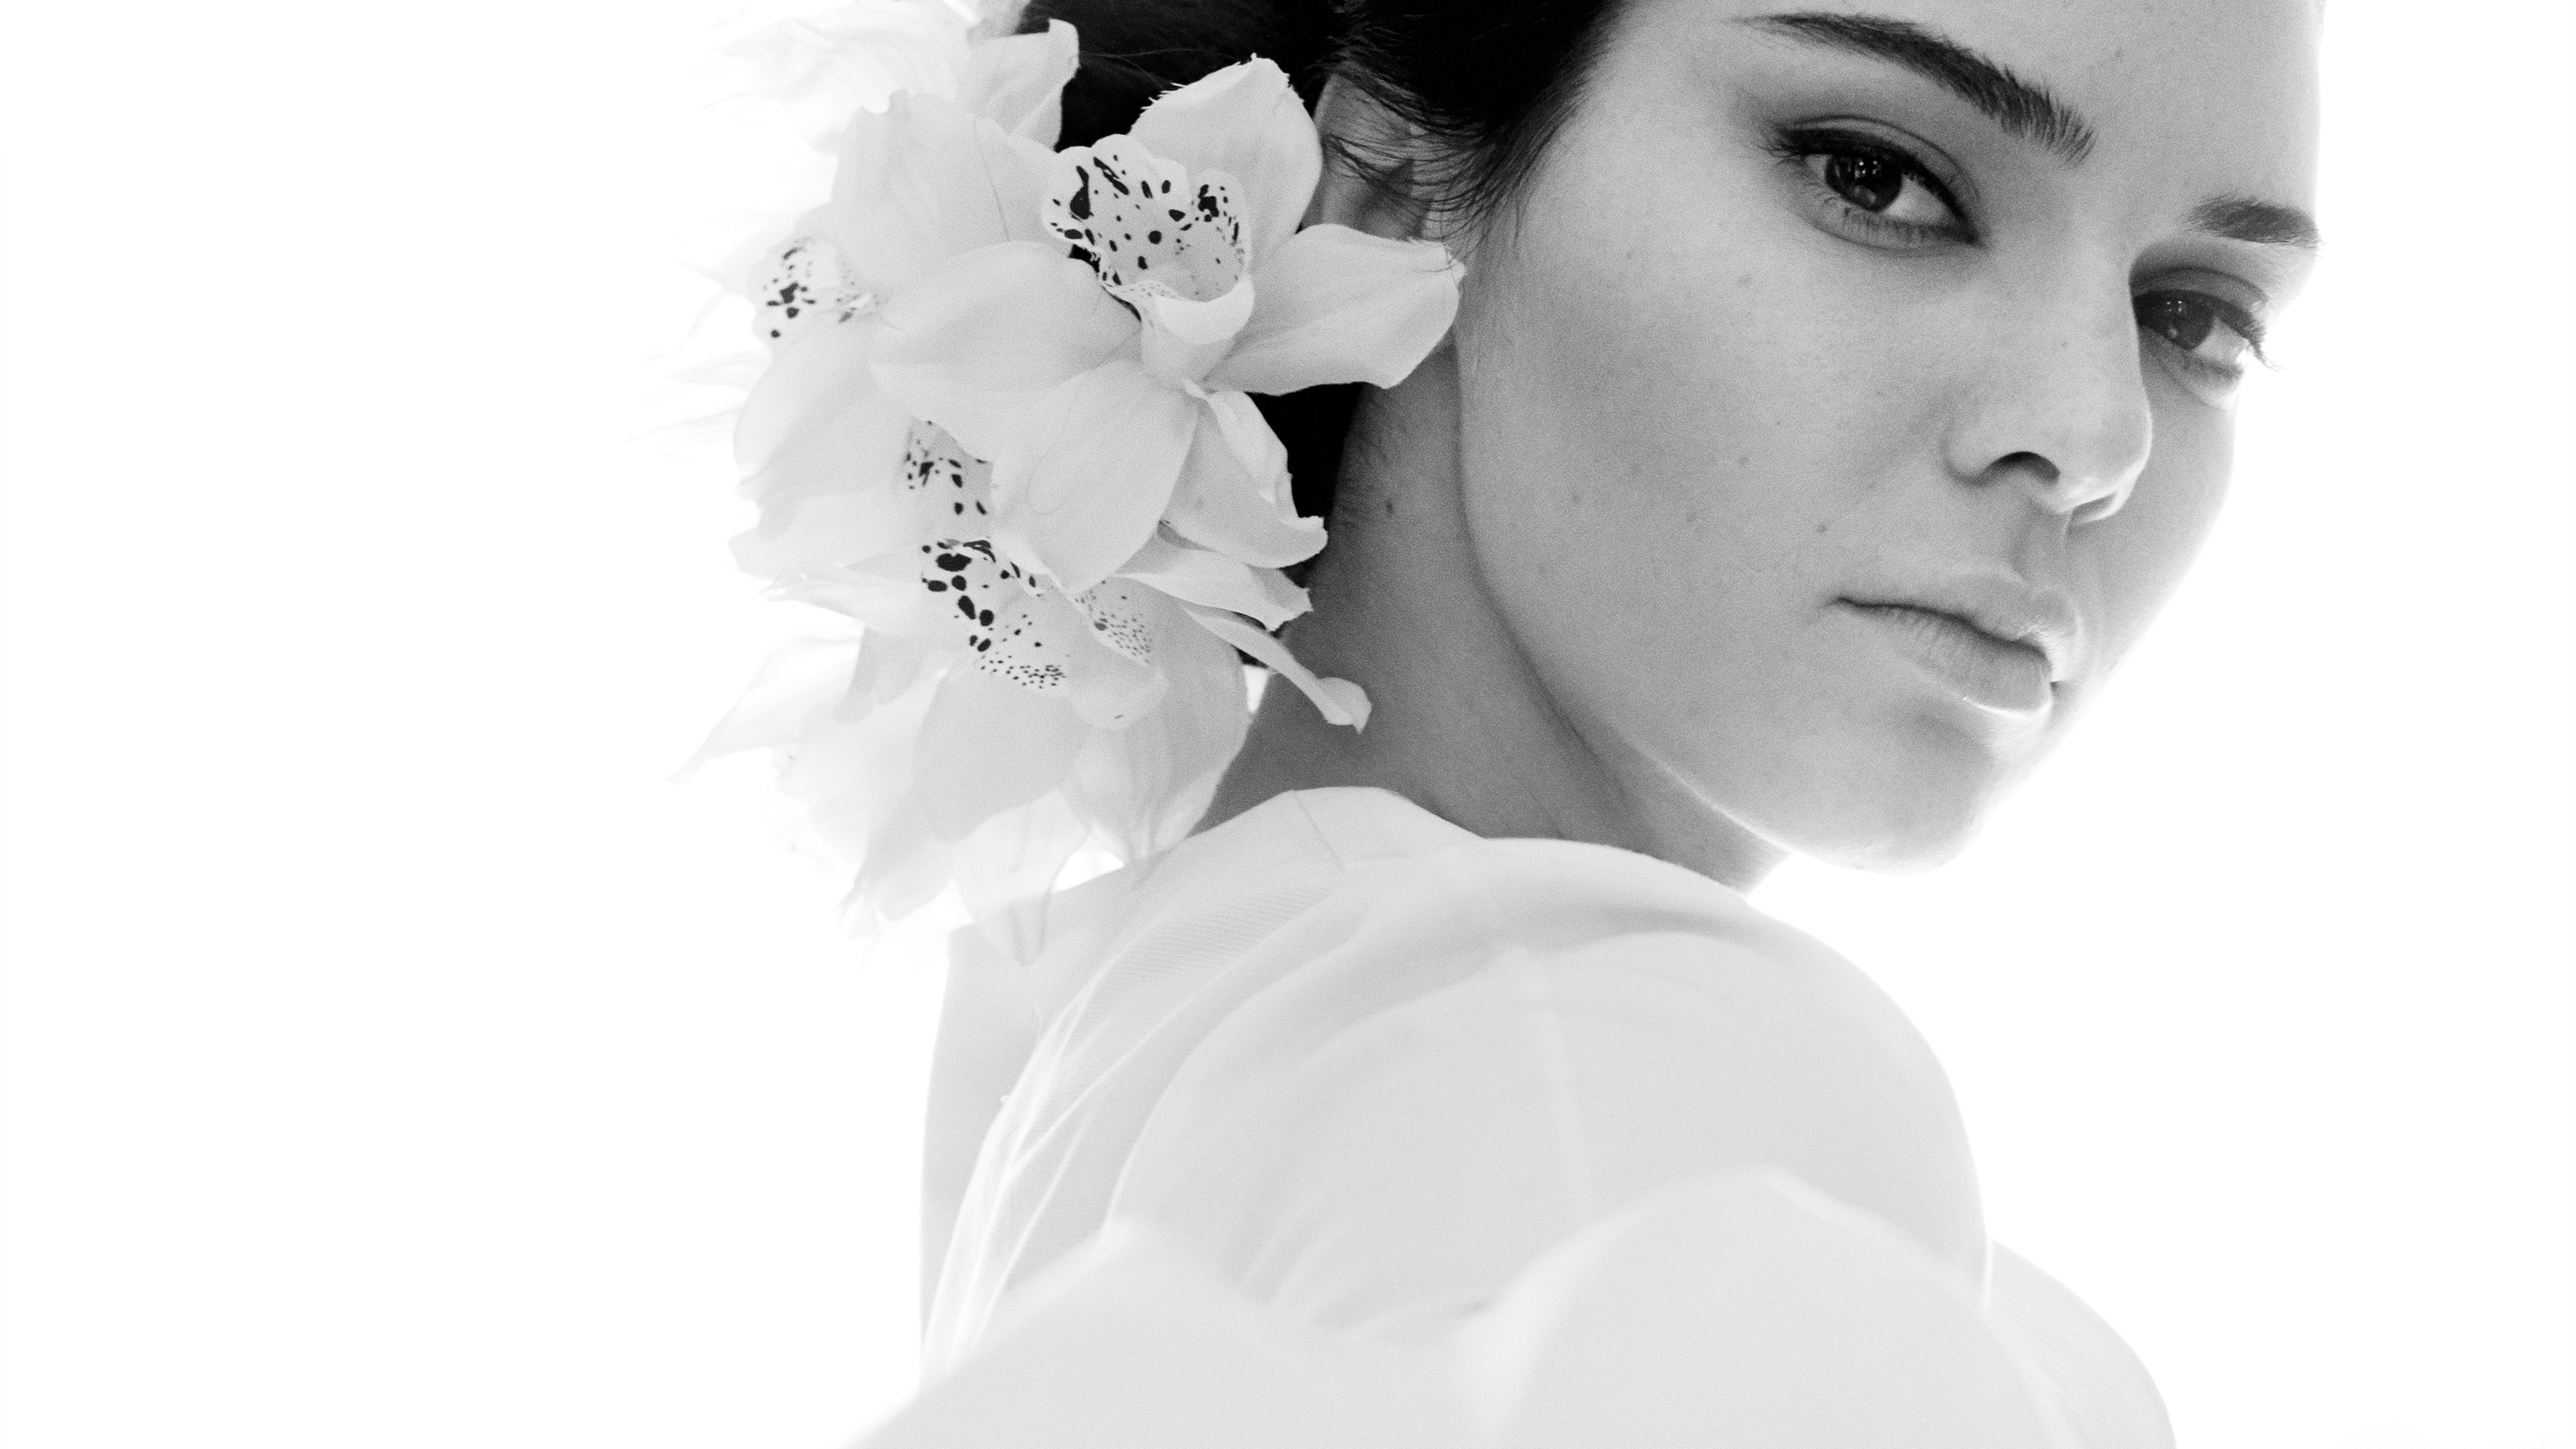 kendall jenner vogue 2019 4k 1536862893 - Kendall Jenner Vogue 2019 4k - vogue wallpapers, monochrome wallpapers, model wallpapers, kendall jenner wallpapers, hd-wallpapers, girls wallpapers, celebrities wallpapers, black and white wallpapers, 4k-wallpapers